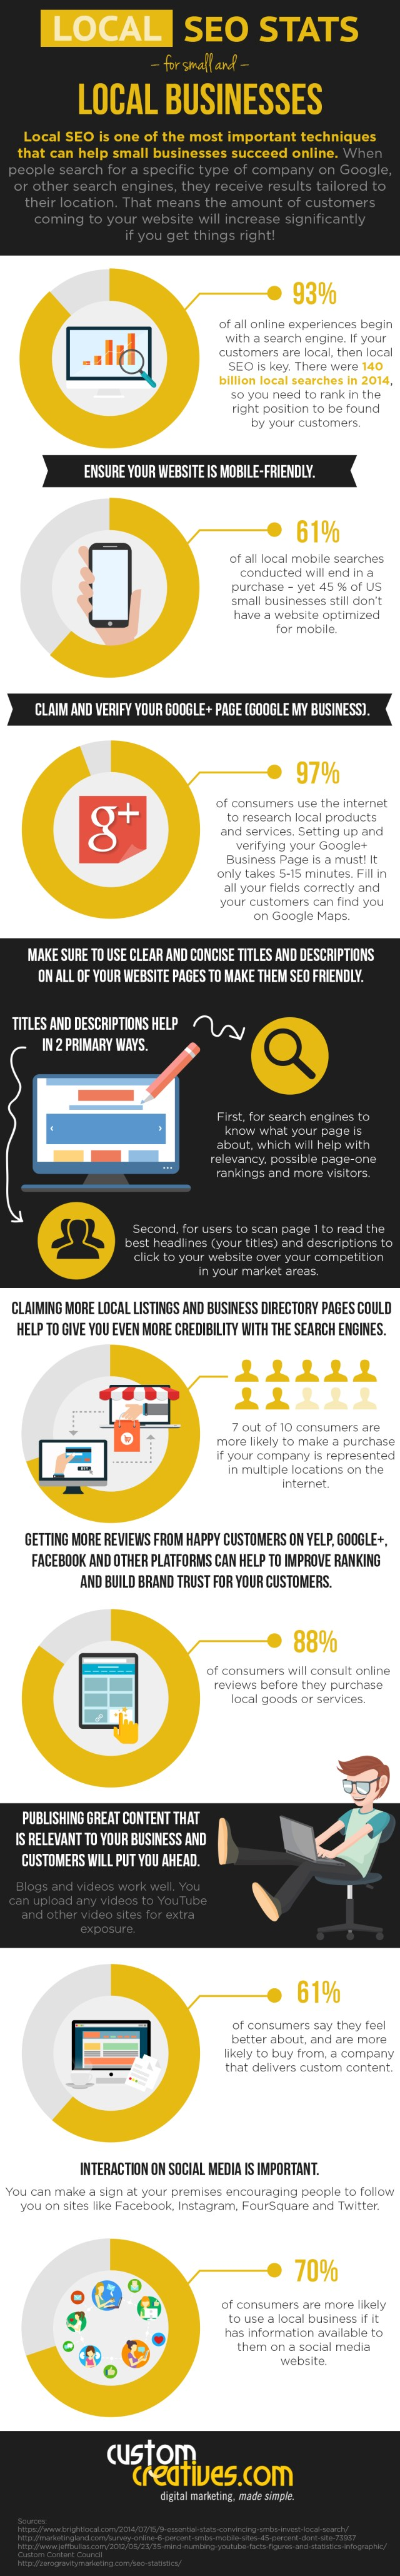 Local SEO Agoura Hills CA - INFOGRAPHIC